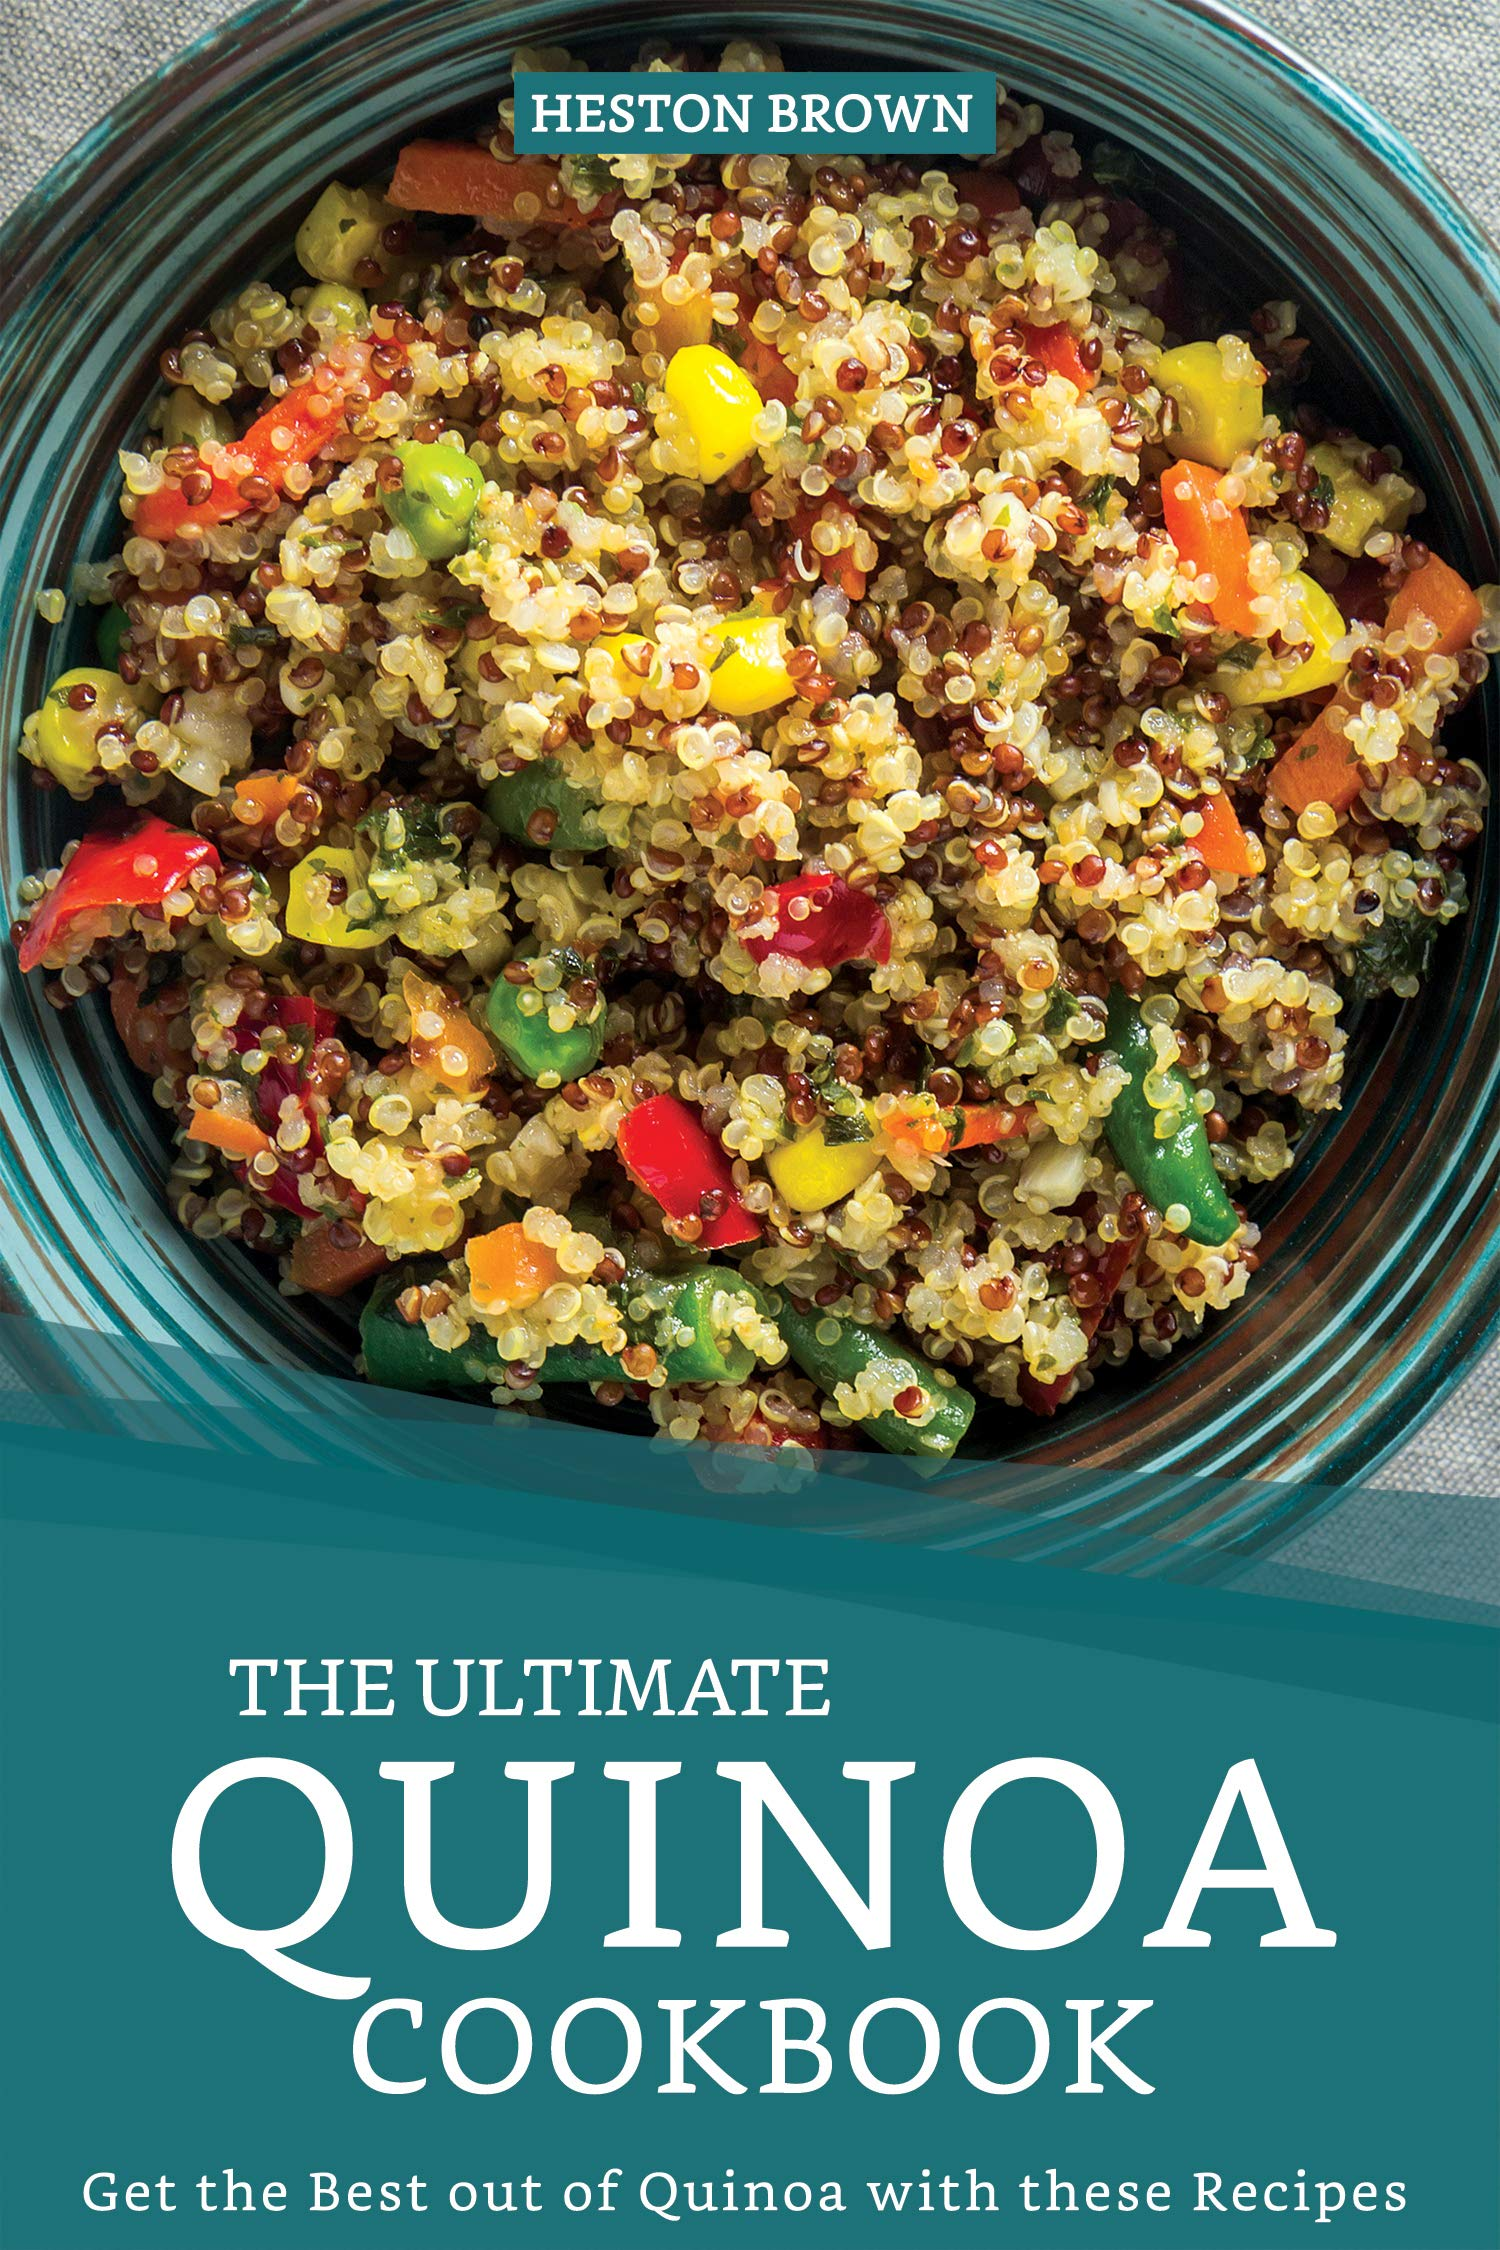 Image OfThe Ultimate Quinoa Cookbook: Get The Best Out Of Quinoa With These Recipes (English Edition)